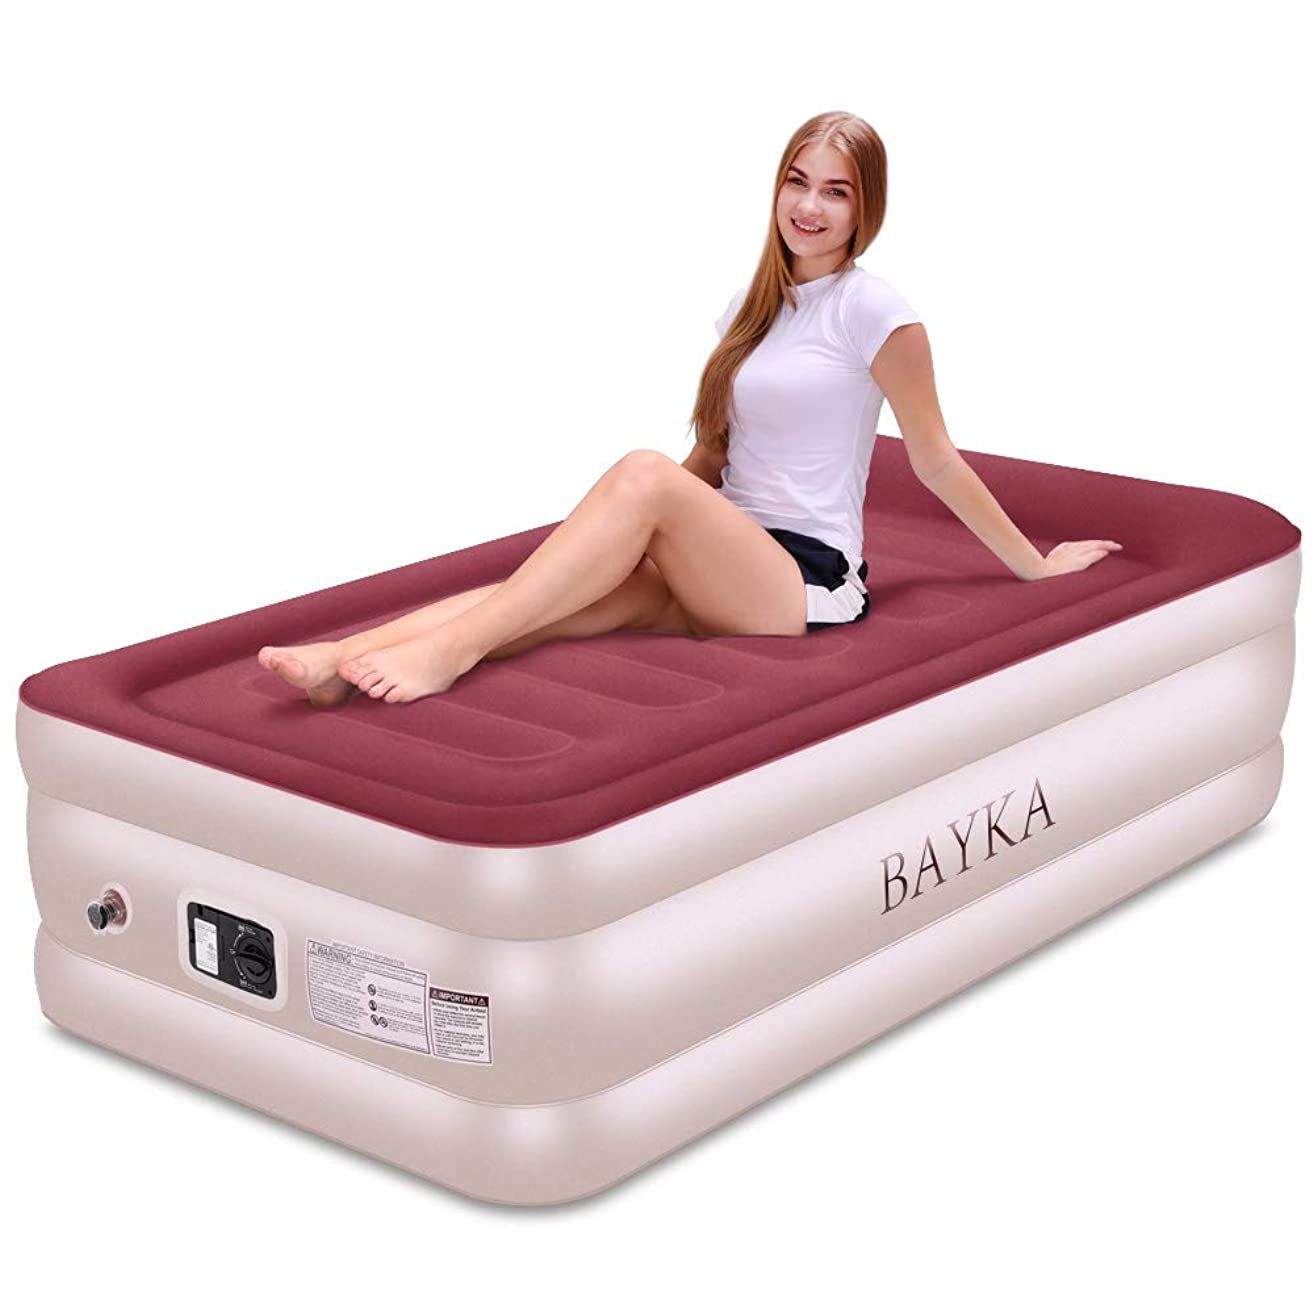 BAYKA Twin Air Mattress with with Built-in Pump & Pillow, Raised Elevated Double High Airbed for Guest, Pink, Blow Up Inflatable Upgraded Camping Bed, 18